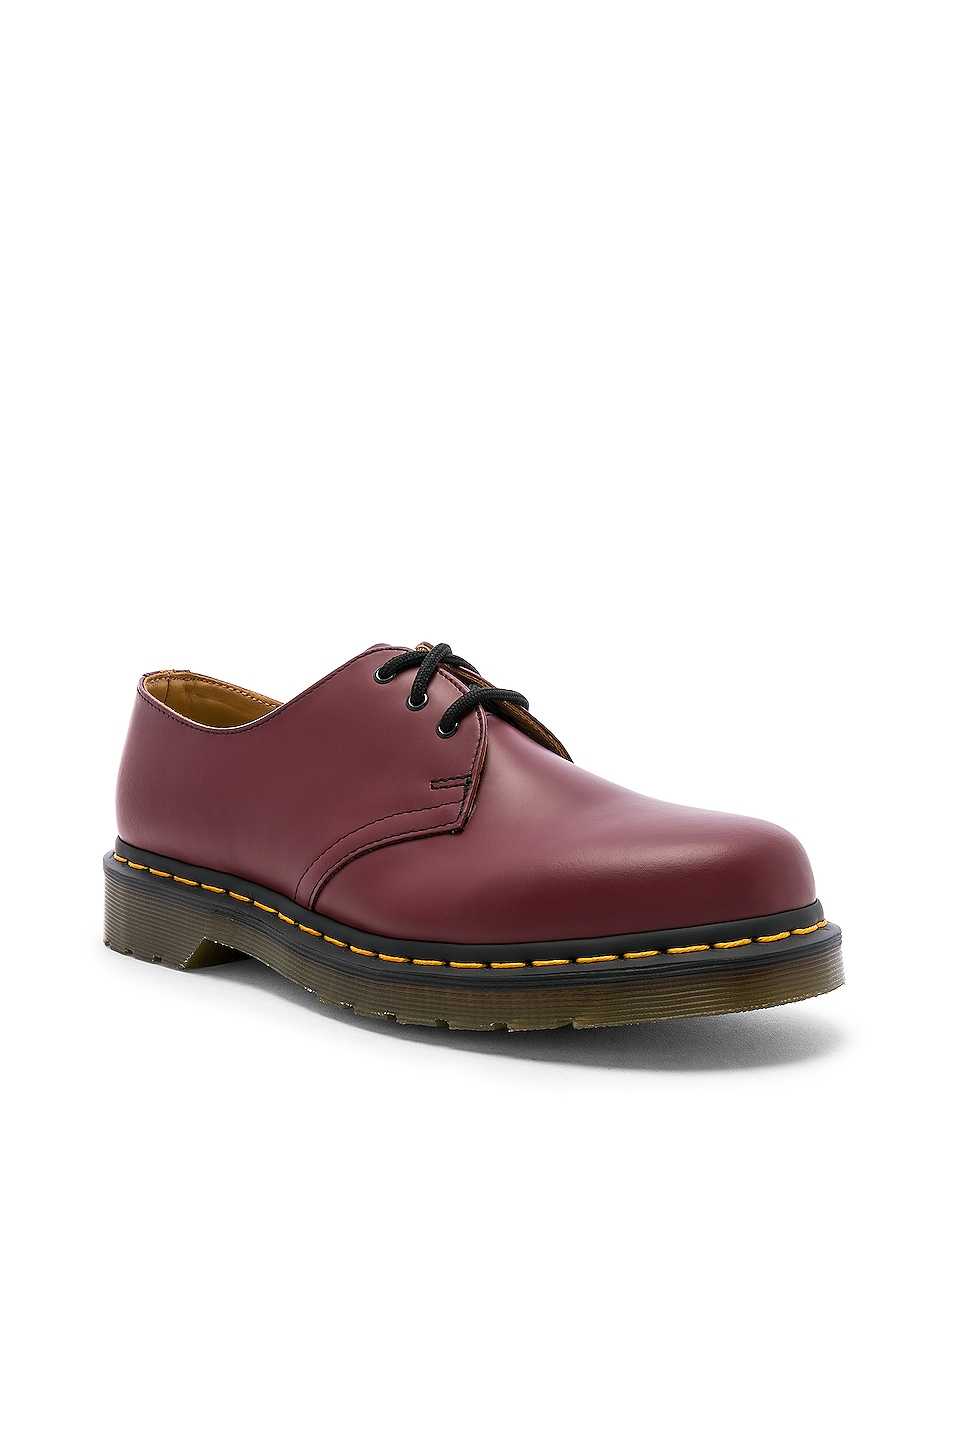 Image 2 of Dr. Martens 1461 3-Eye Shoe in Cherry Red